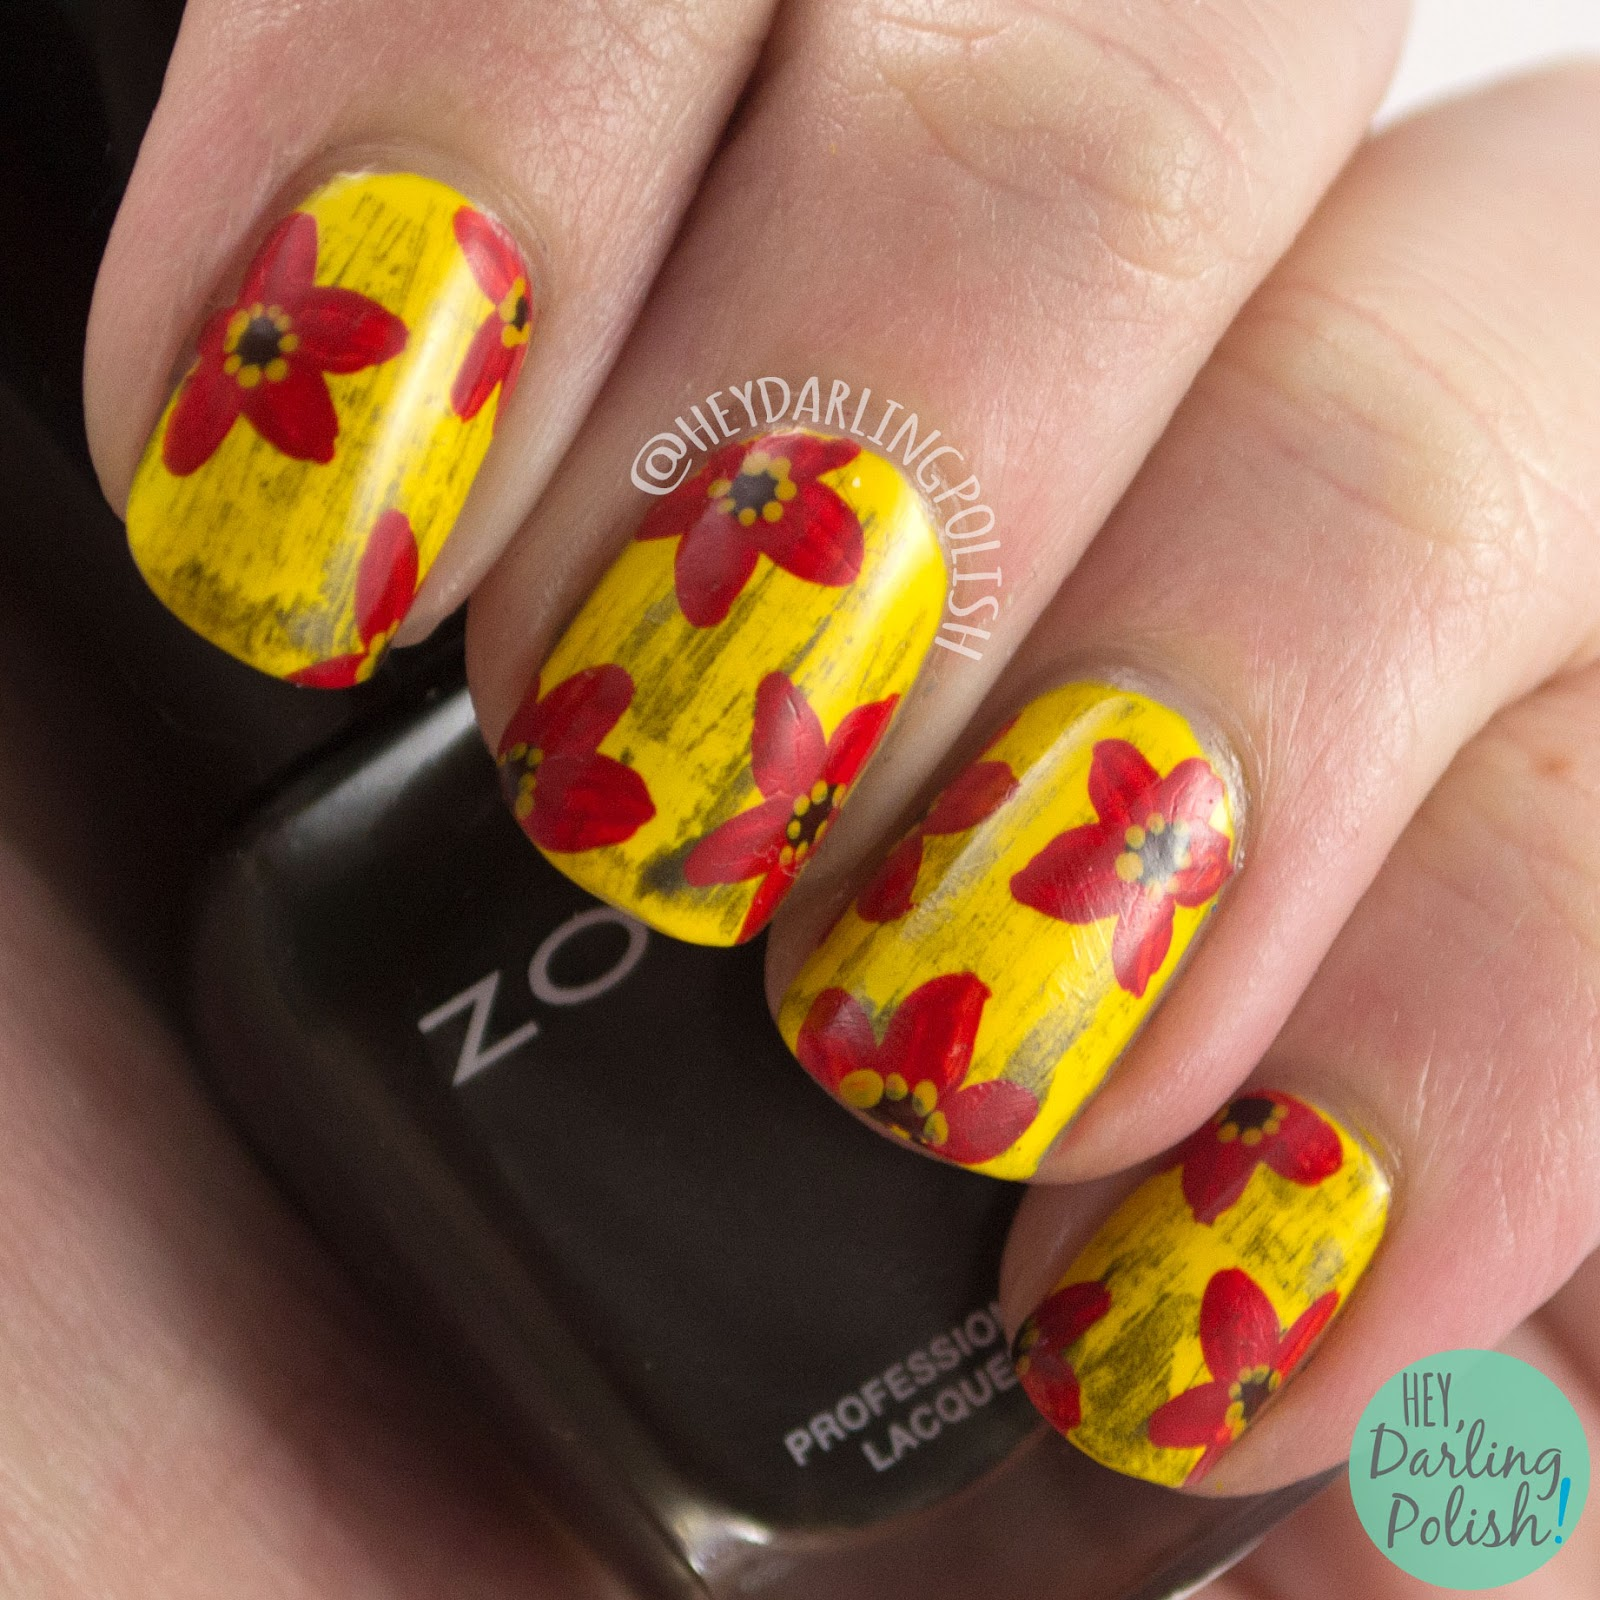 nails, nail art, nail polish, yellow, floral, flowers, red, hey darling polish, zoya, free hand